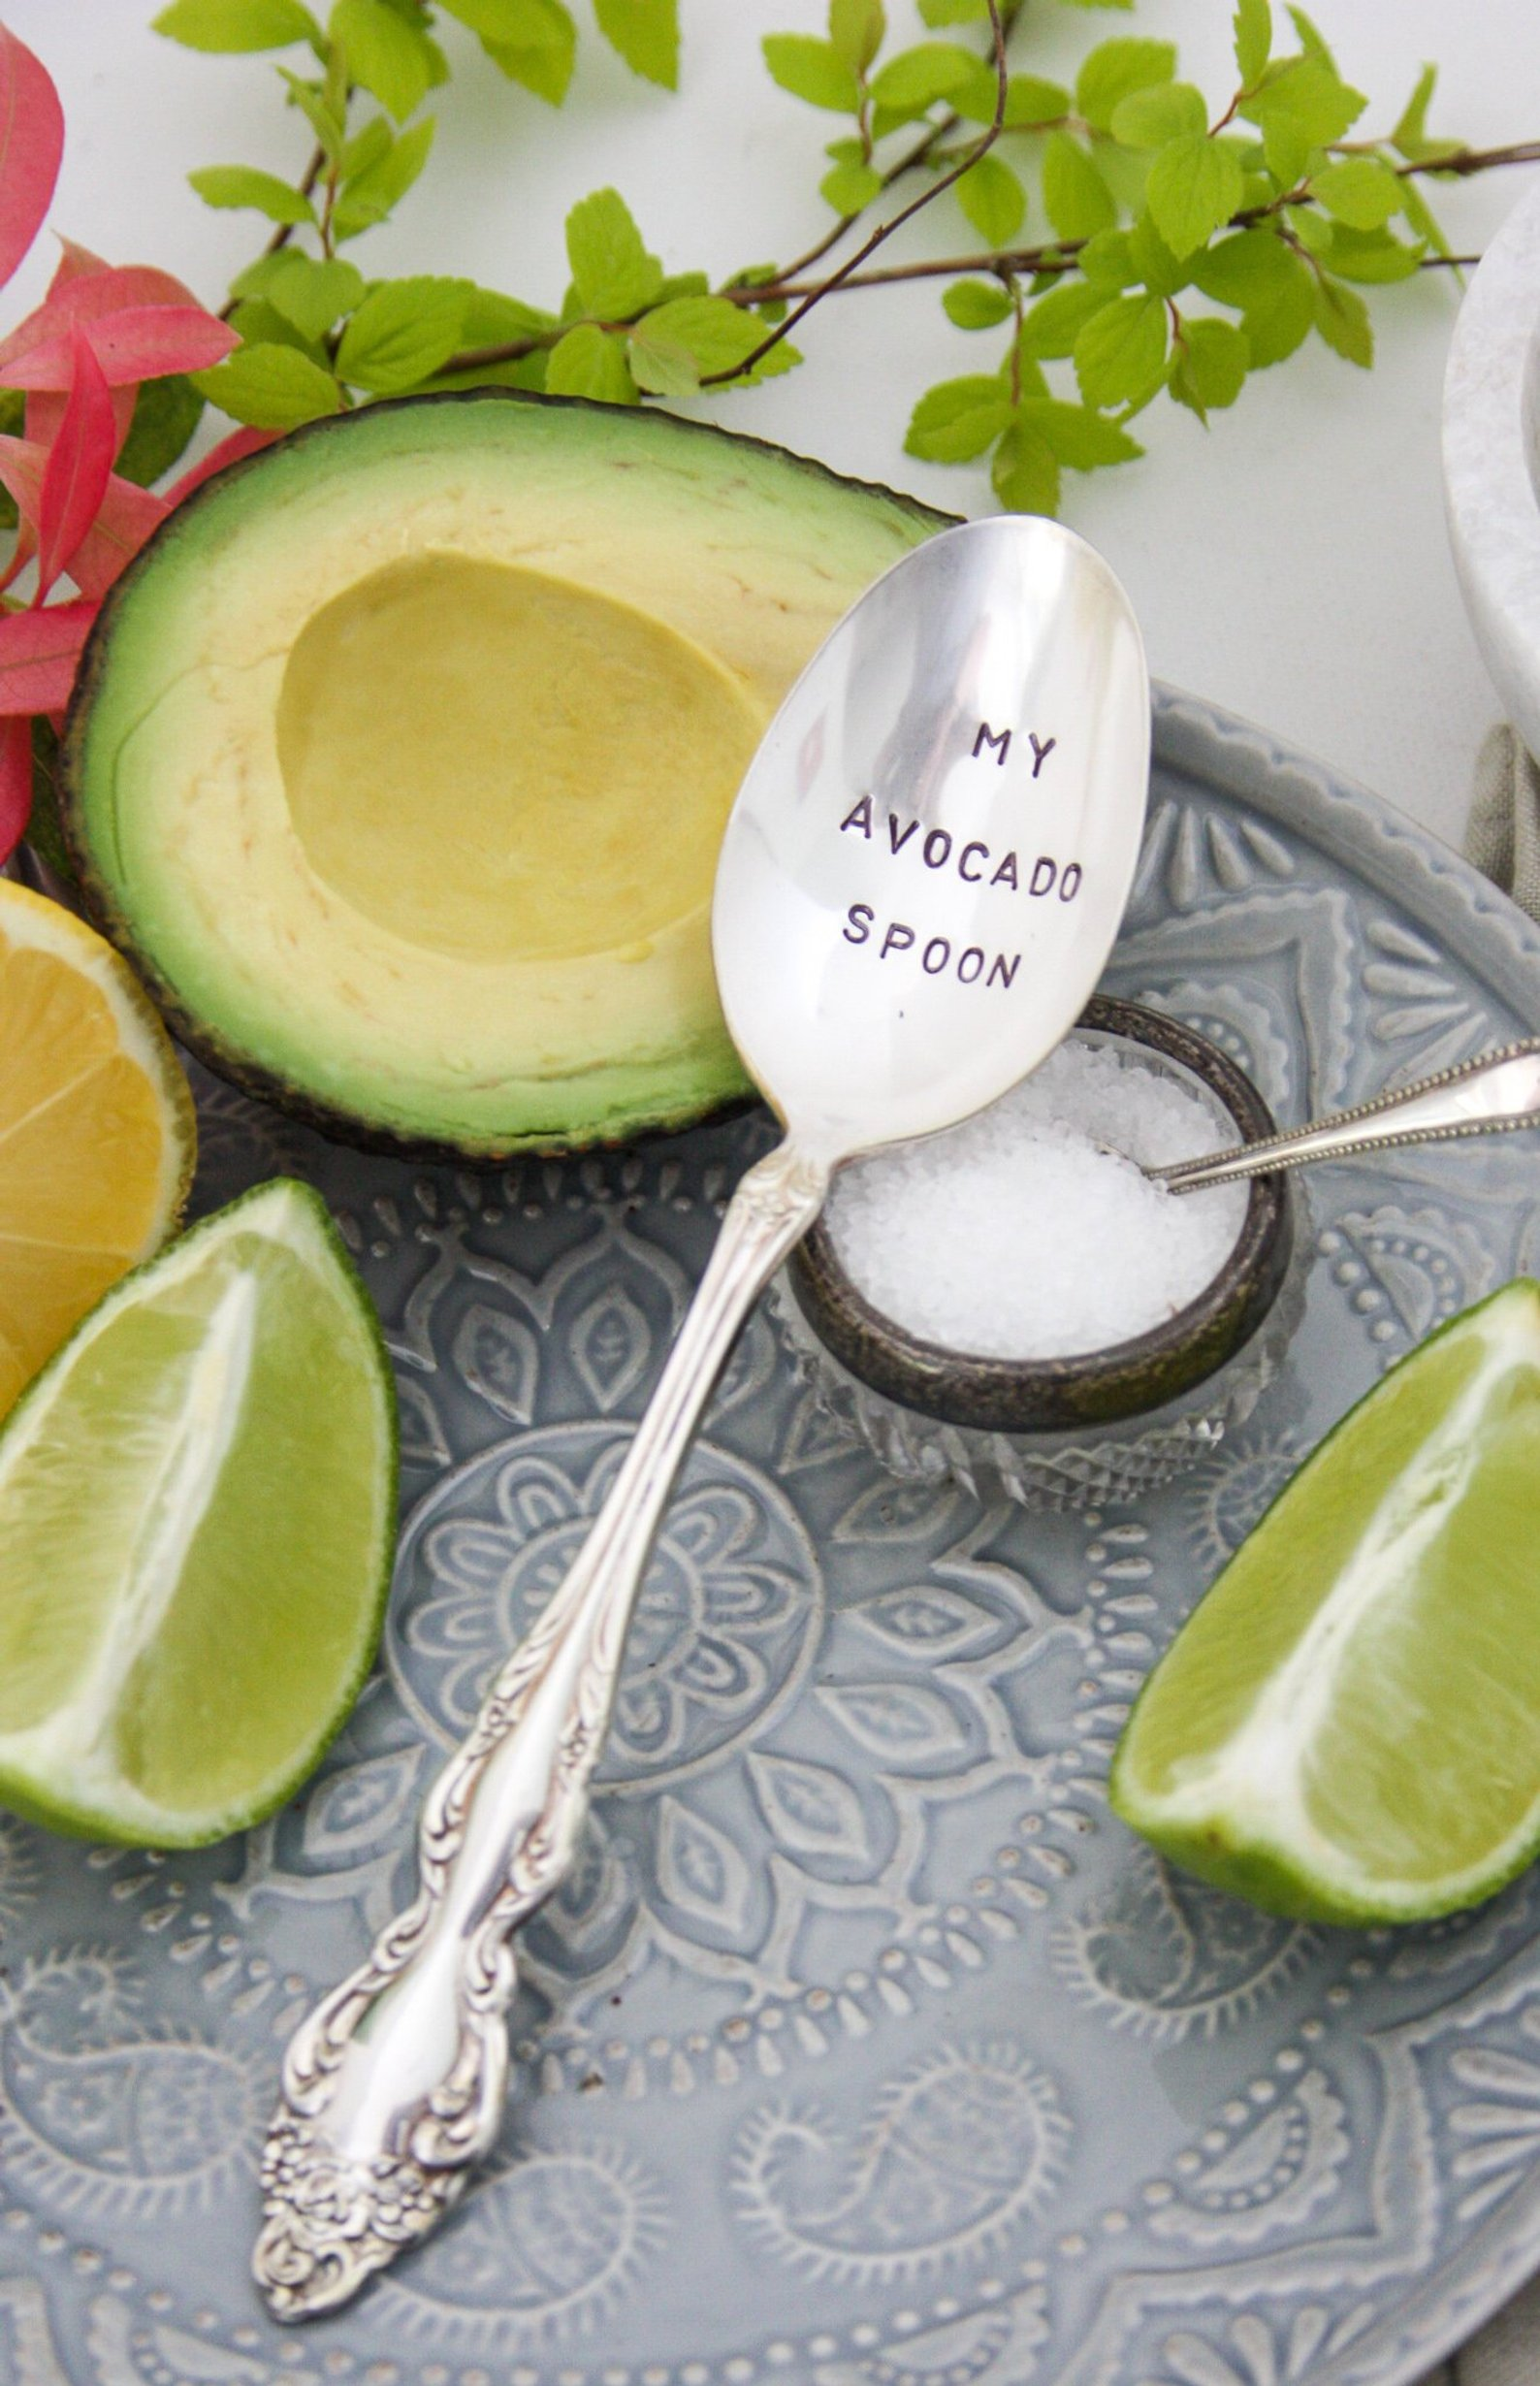 My Avocado Spoon Stamped Spoon By Andthenagaindesigns